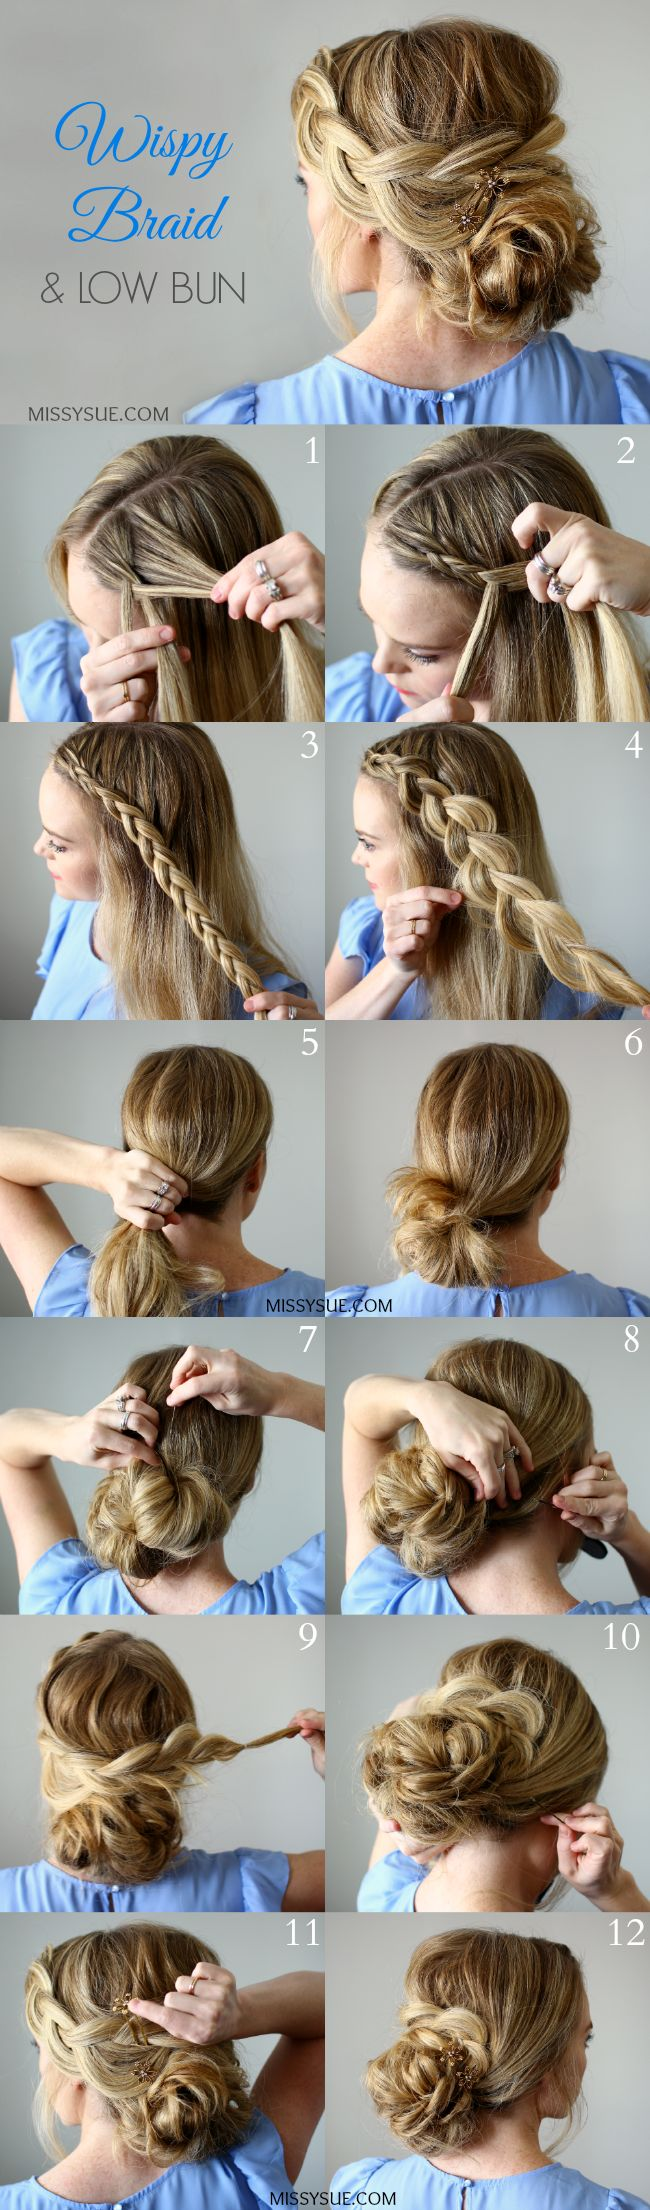 Outstanding 1000 Ideas About Easy Low Bun On Pinterest Low Buns Simple Short Hairstyles Gunalazisus